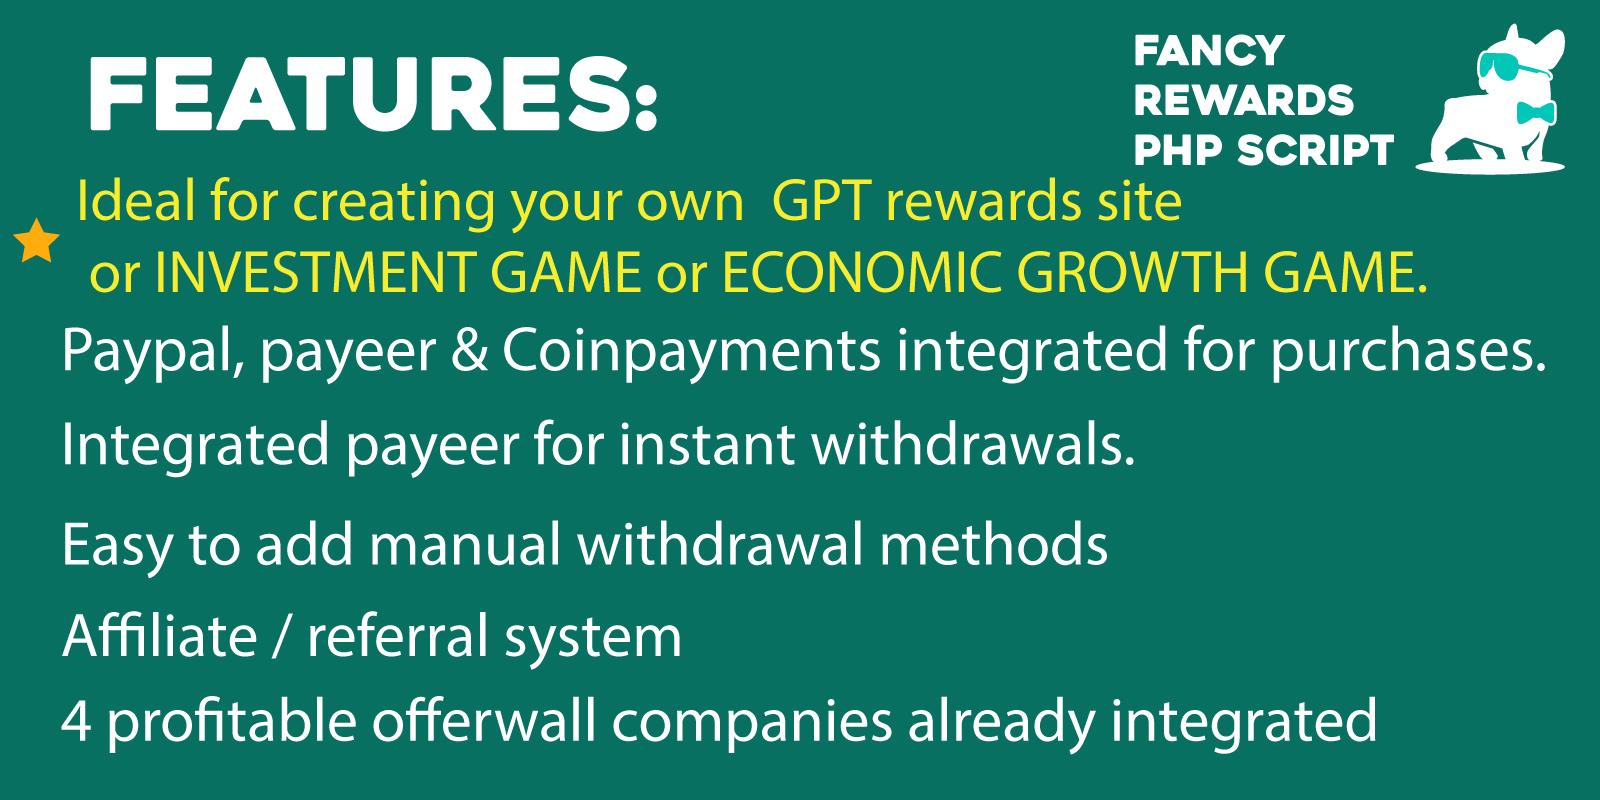 Hyip Fancy Rewards PHP Script: Create your own investment game